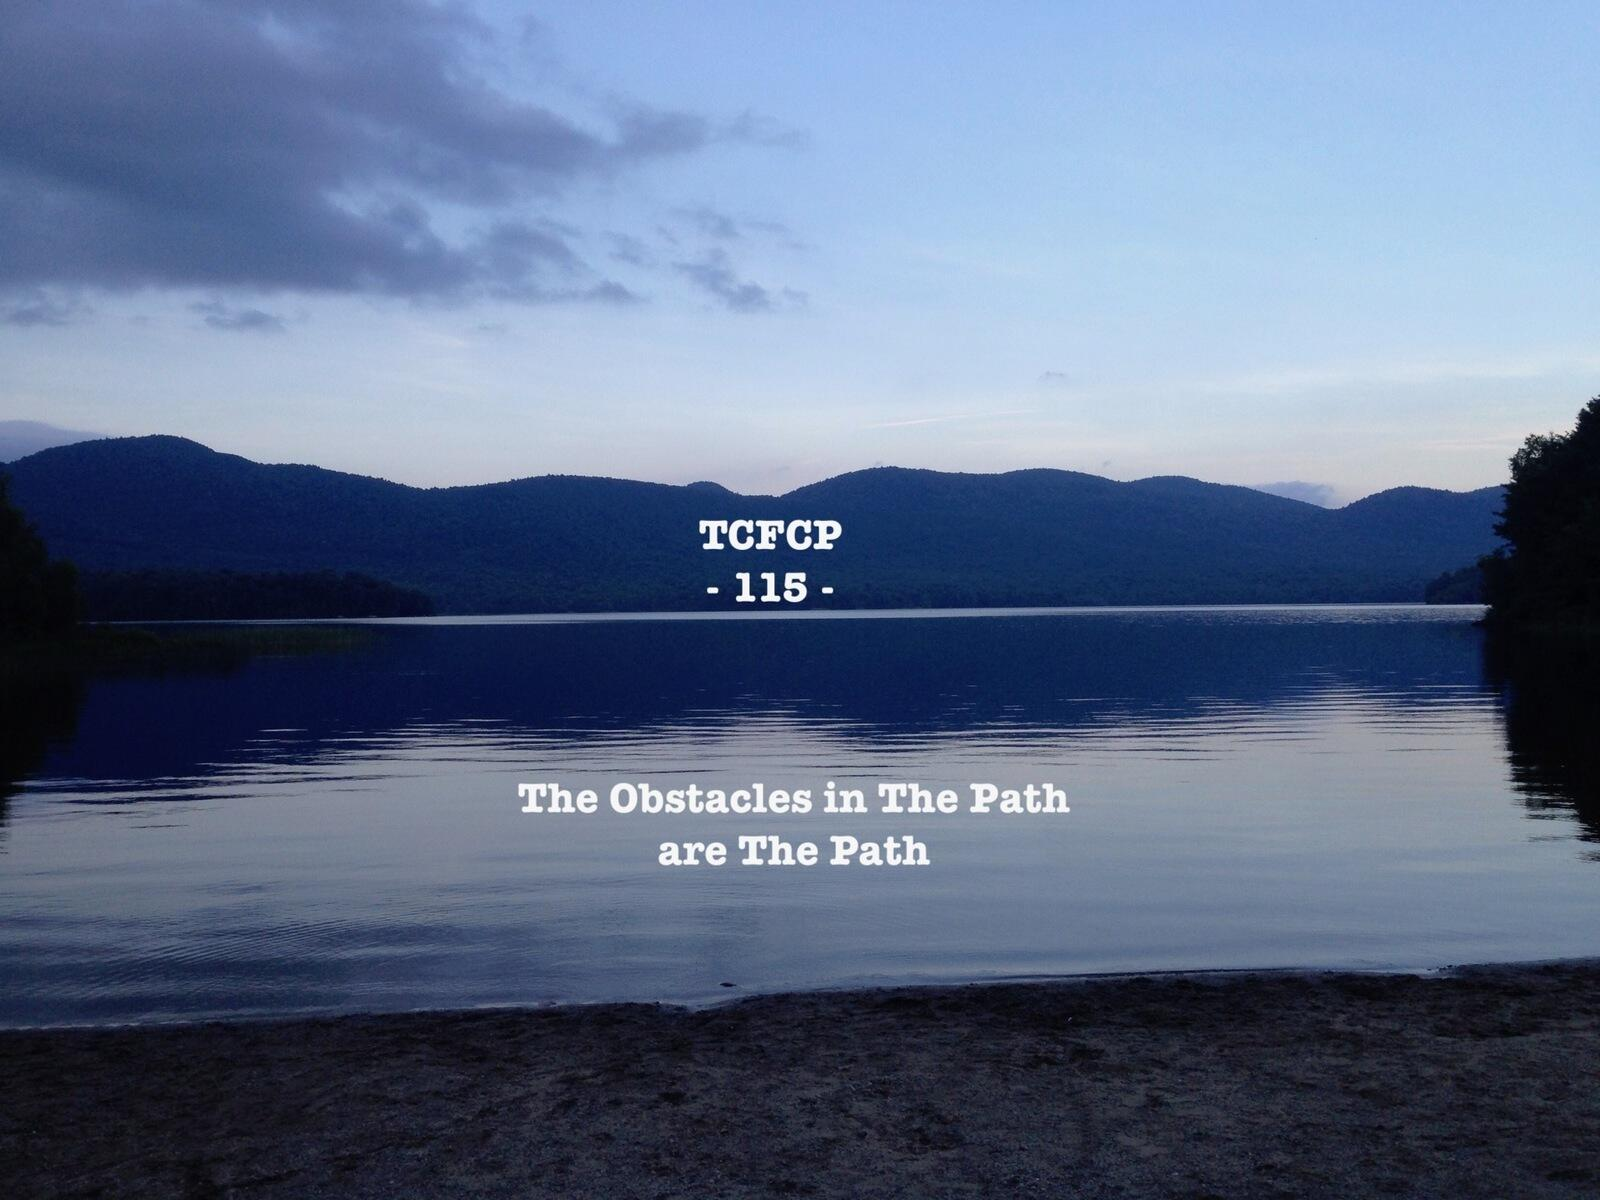 115: EPISODE 115 - The Obstacles in The Path are The Path